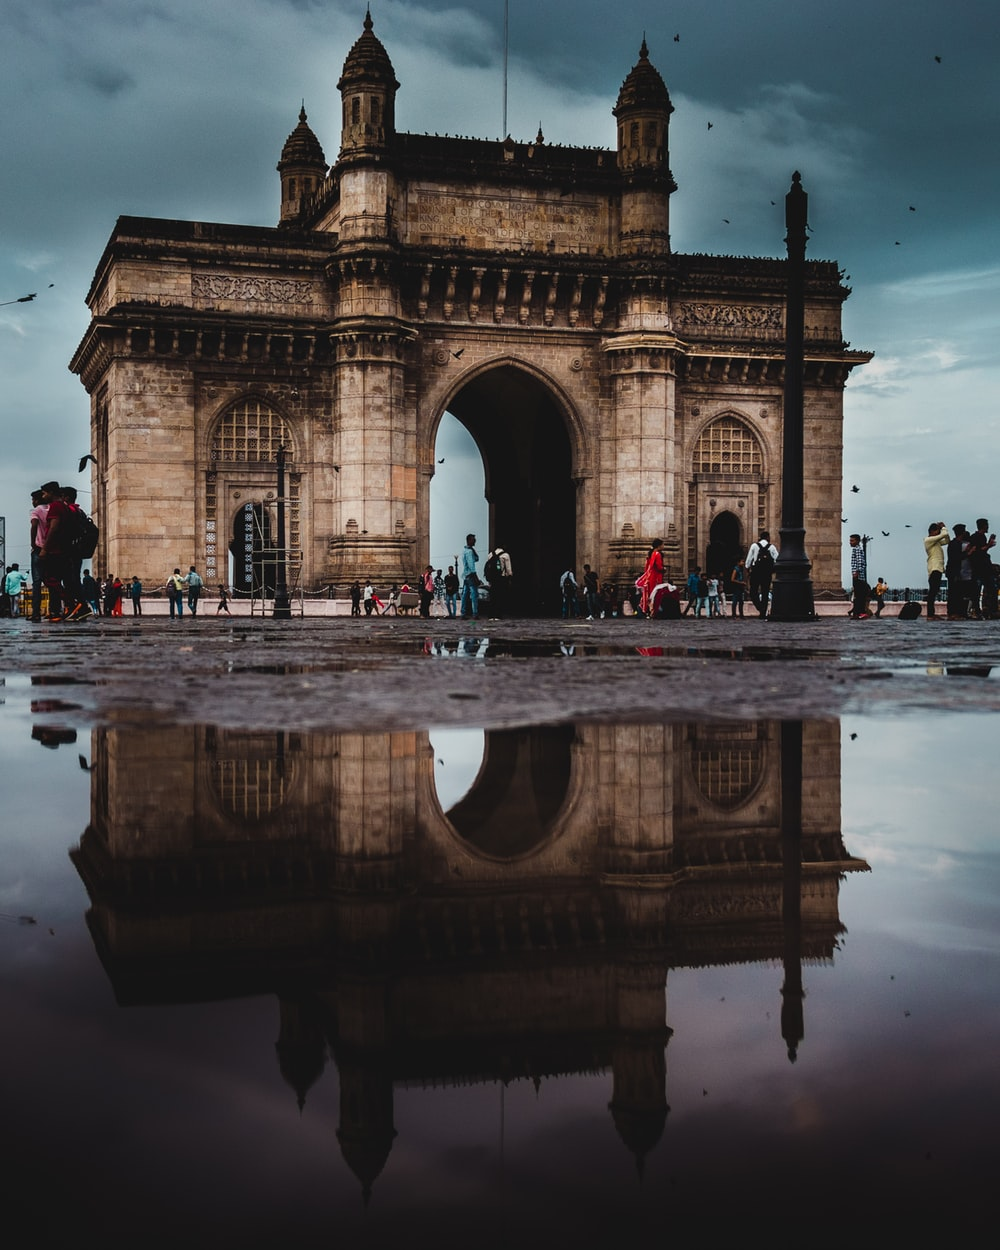 500 Stunning Mumbai Pictures [HD] Download Images on Unsplash 1000x1250